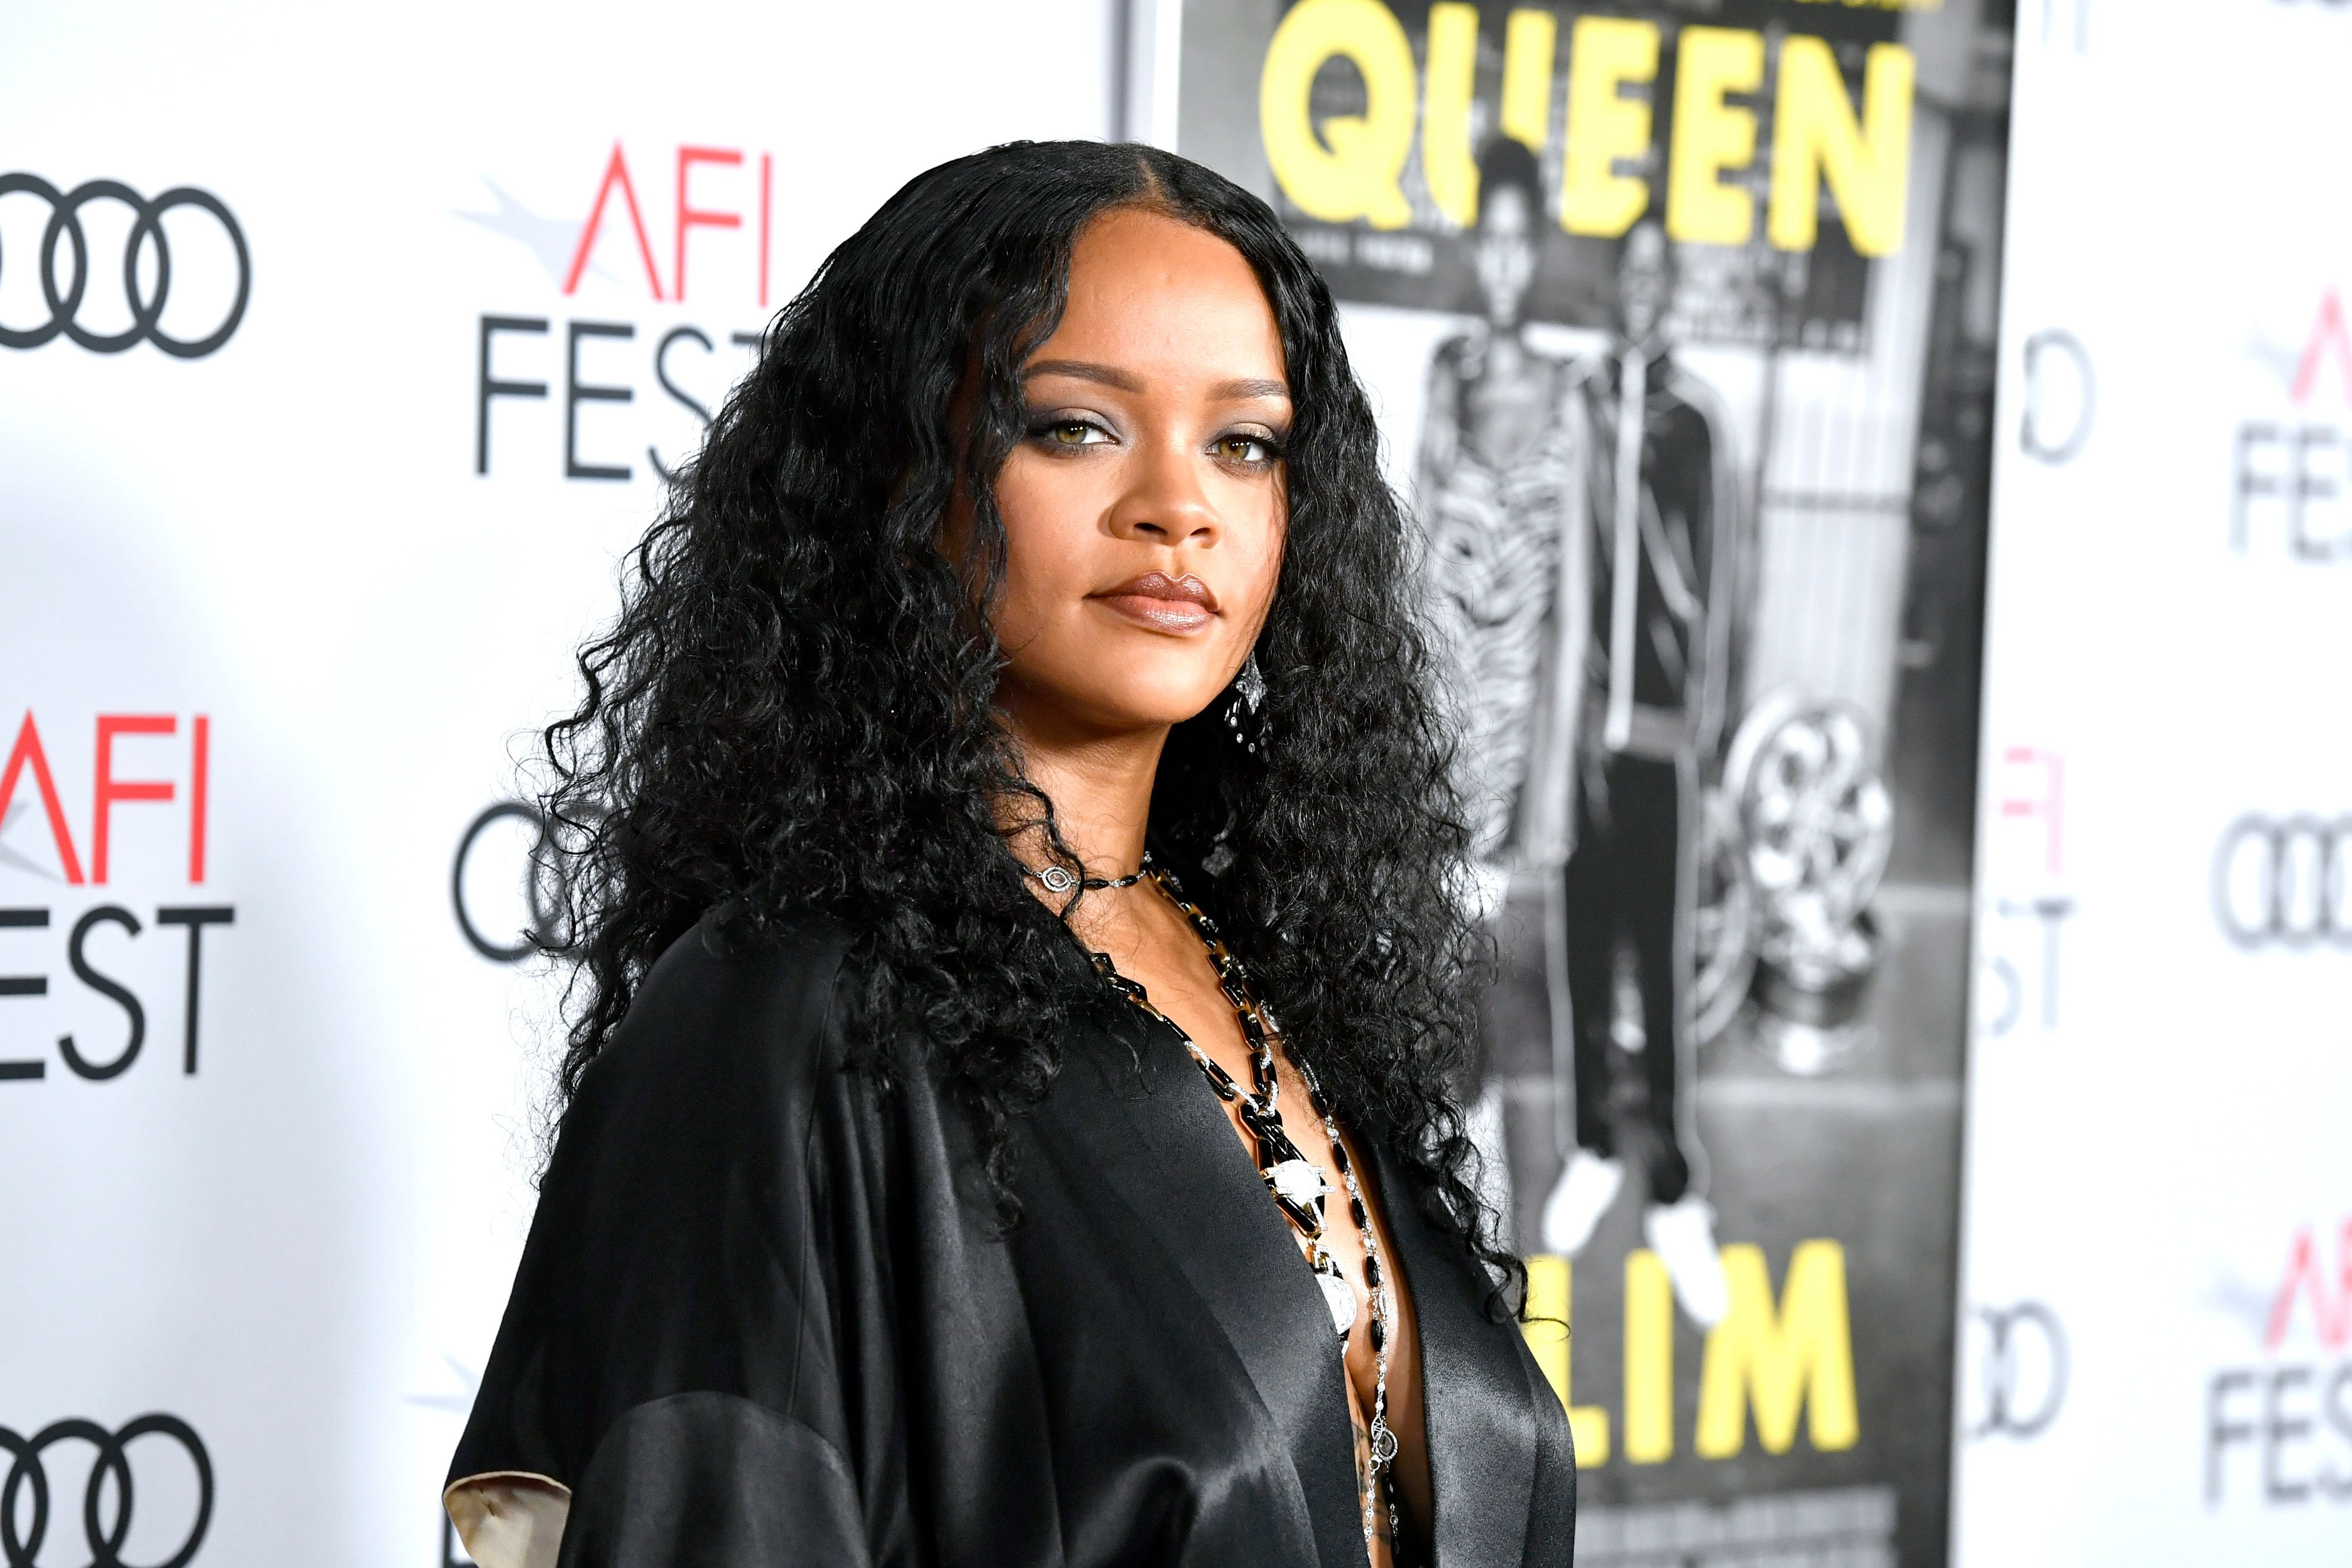 """Rihanna at the """"Queen & Slim"""" premiere at AFI FEST 2019 presented by Audi at the TCL Chinese Theatre on November 14, 2019 